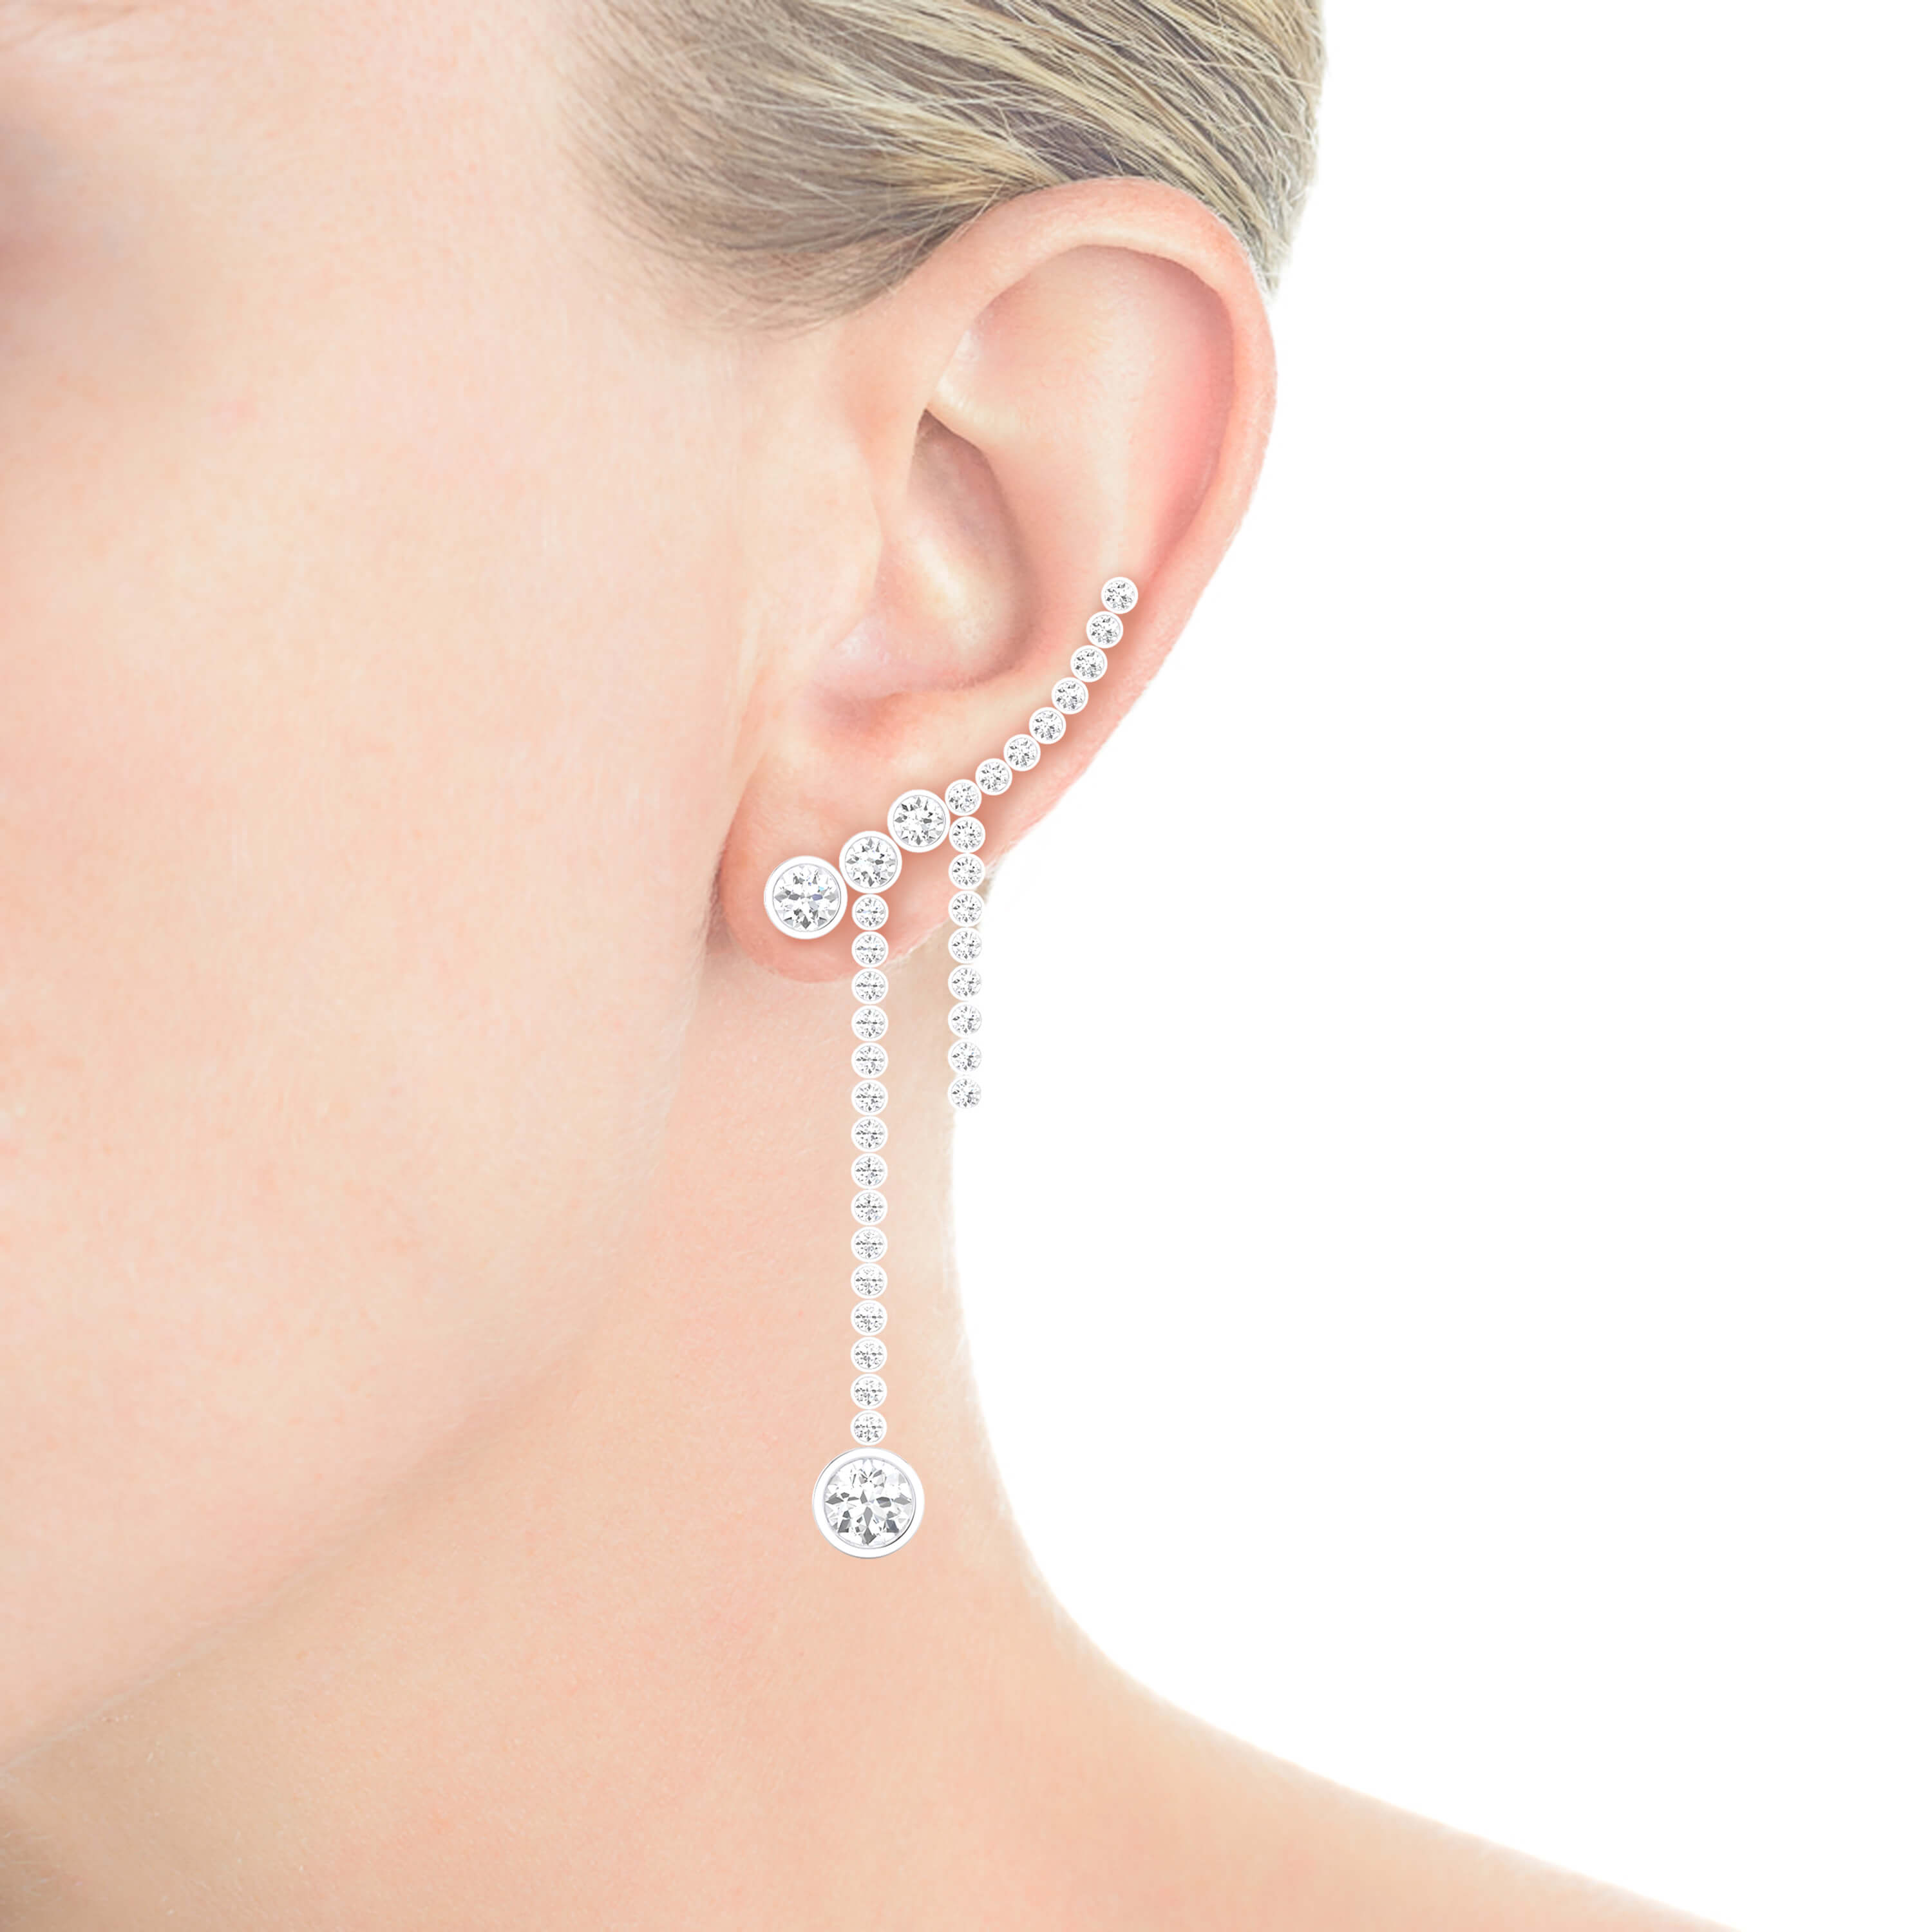 Earrings 18k white gold with 70 diamonds